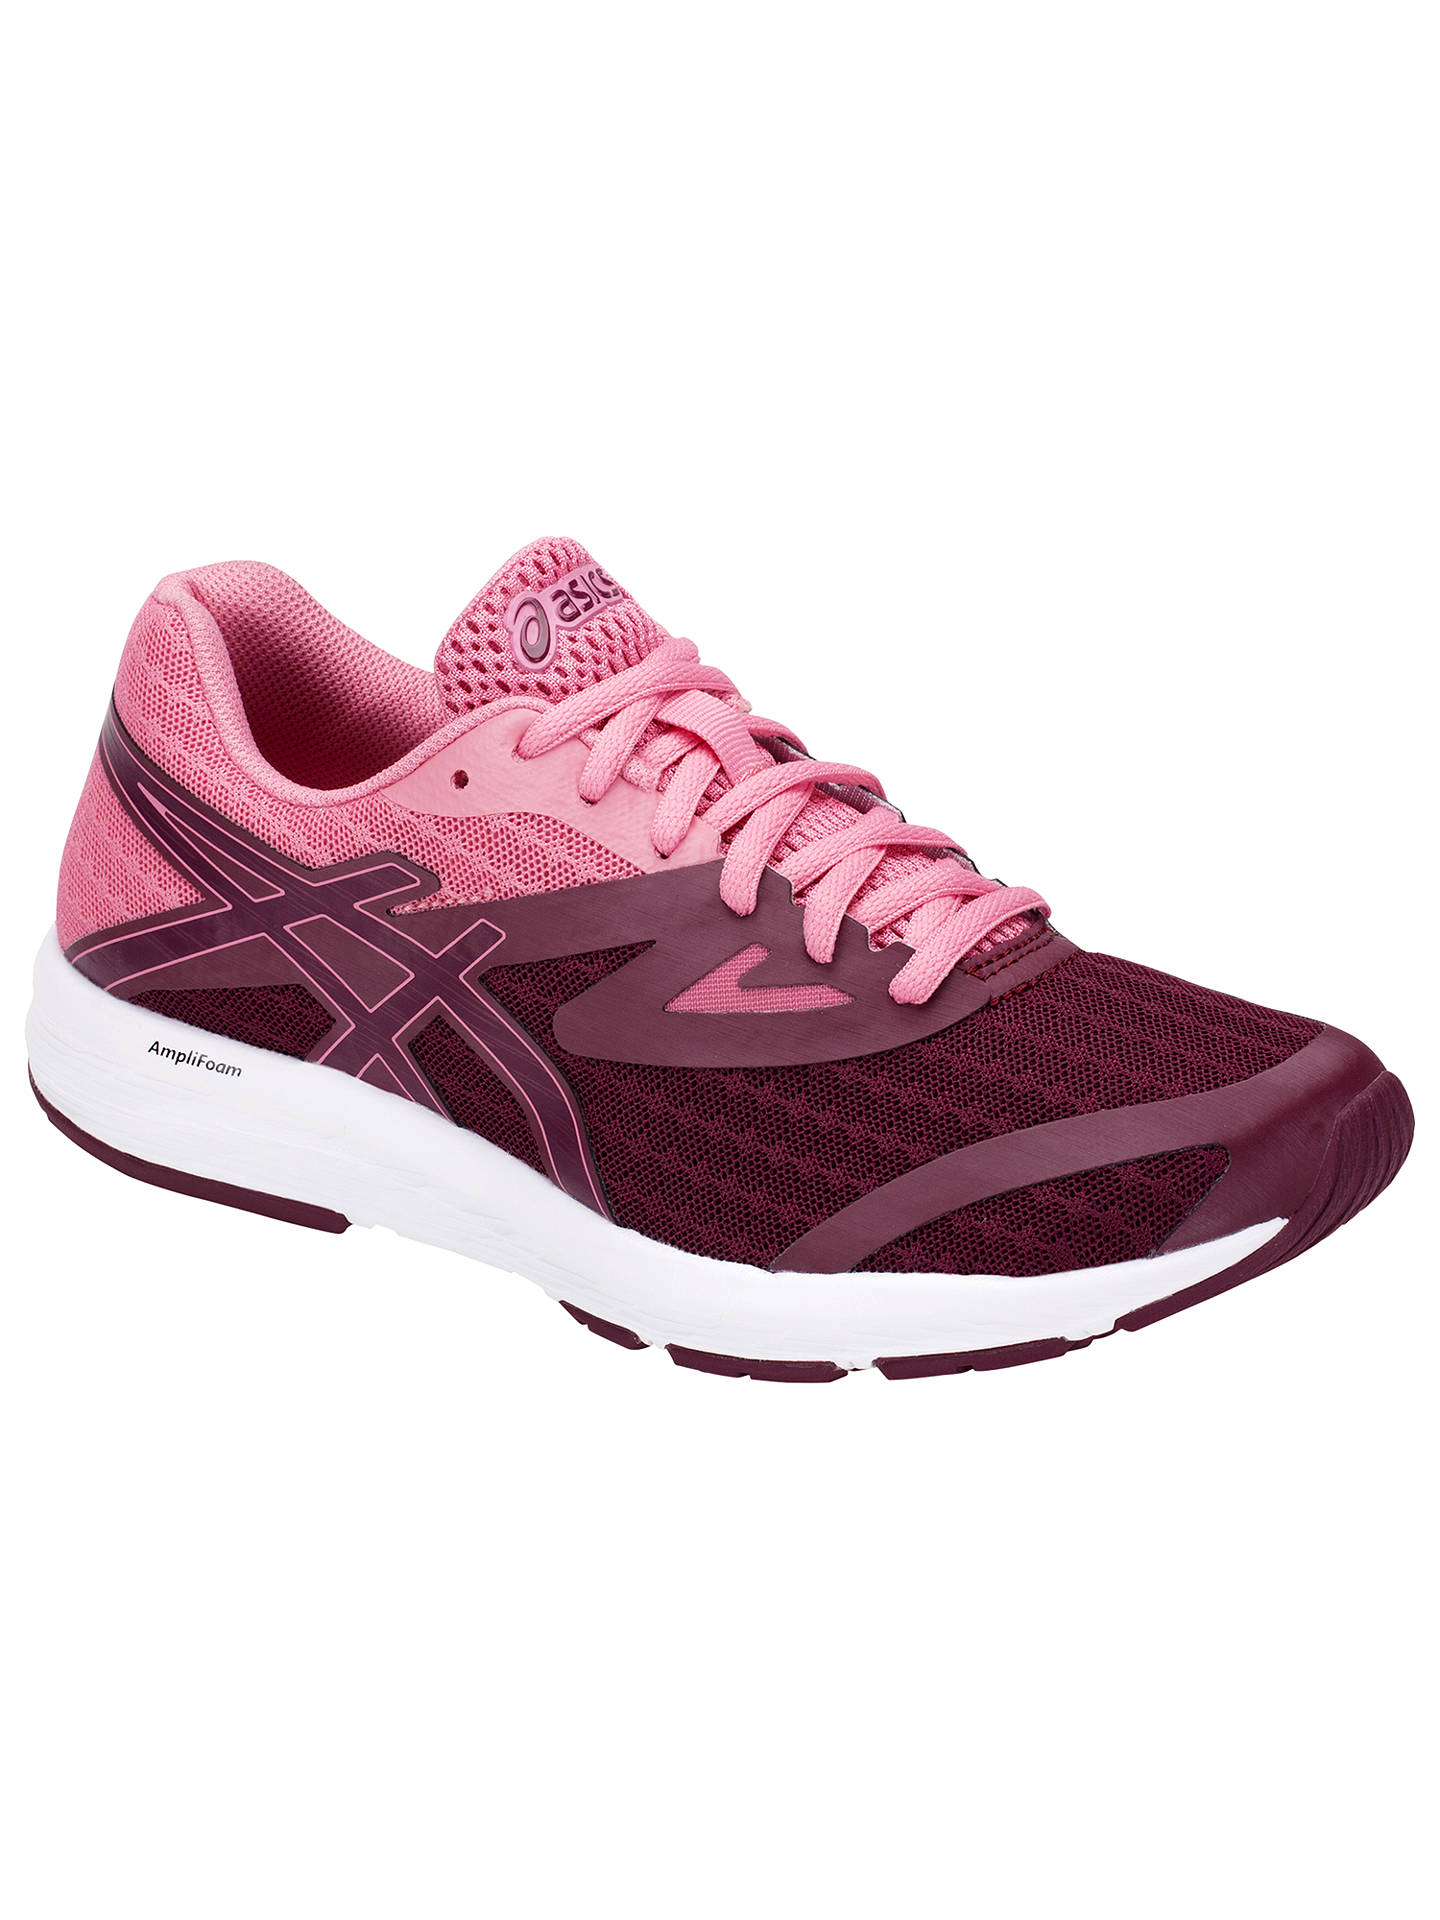 Inform disloyalty narrow  ASICS Women's Amplica Running Shoes at John Lewis & Partners